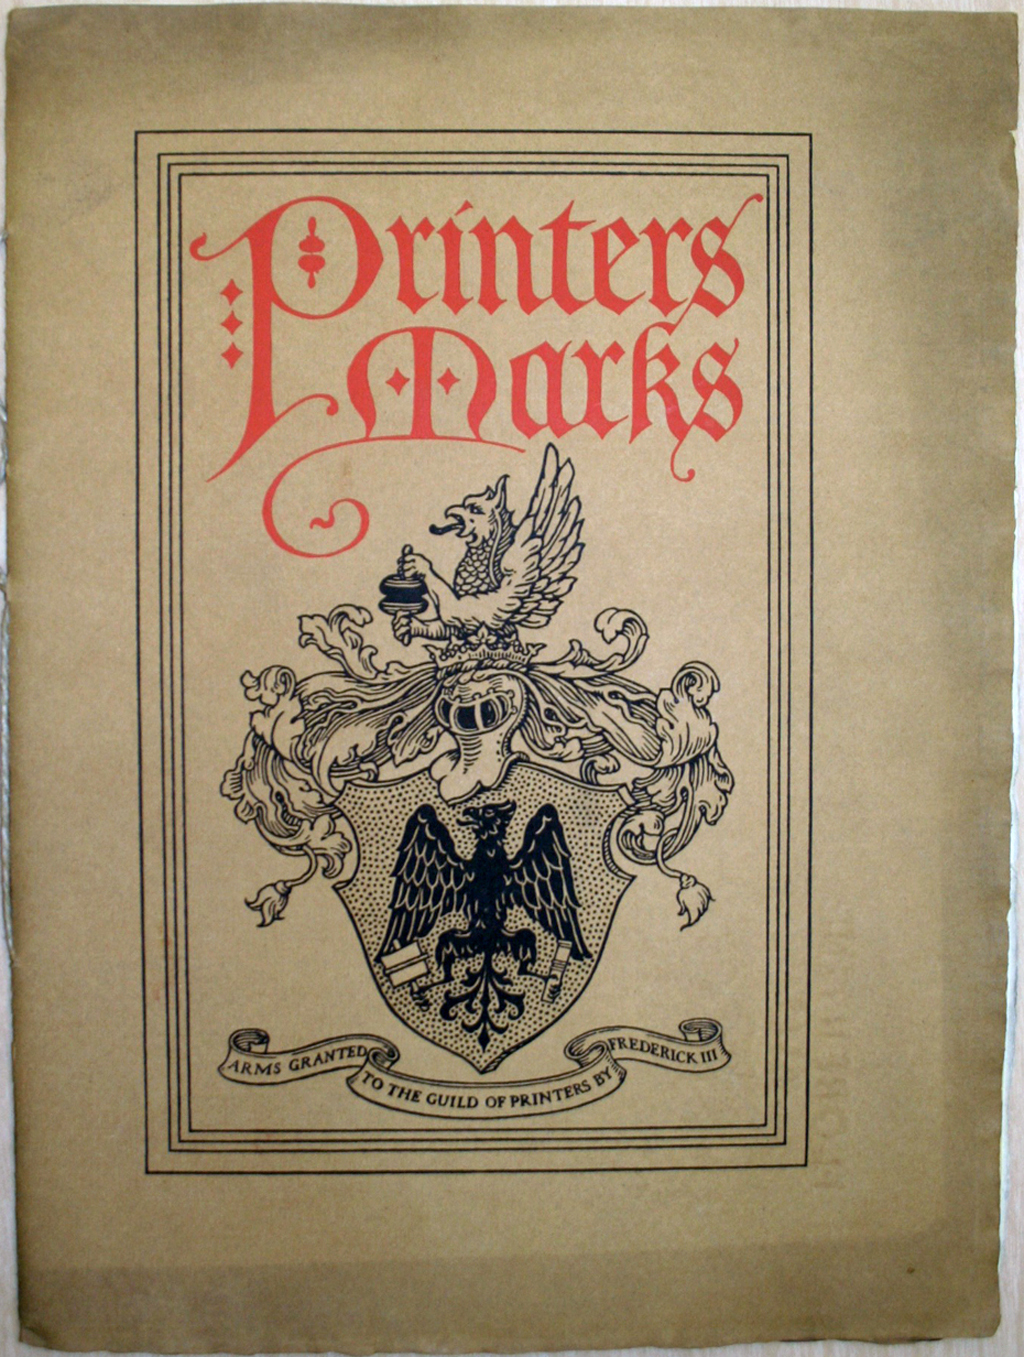 Printers Marks booklet cover. Lettering and design by Frederic W. Goudy.